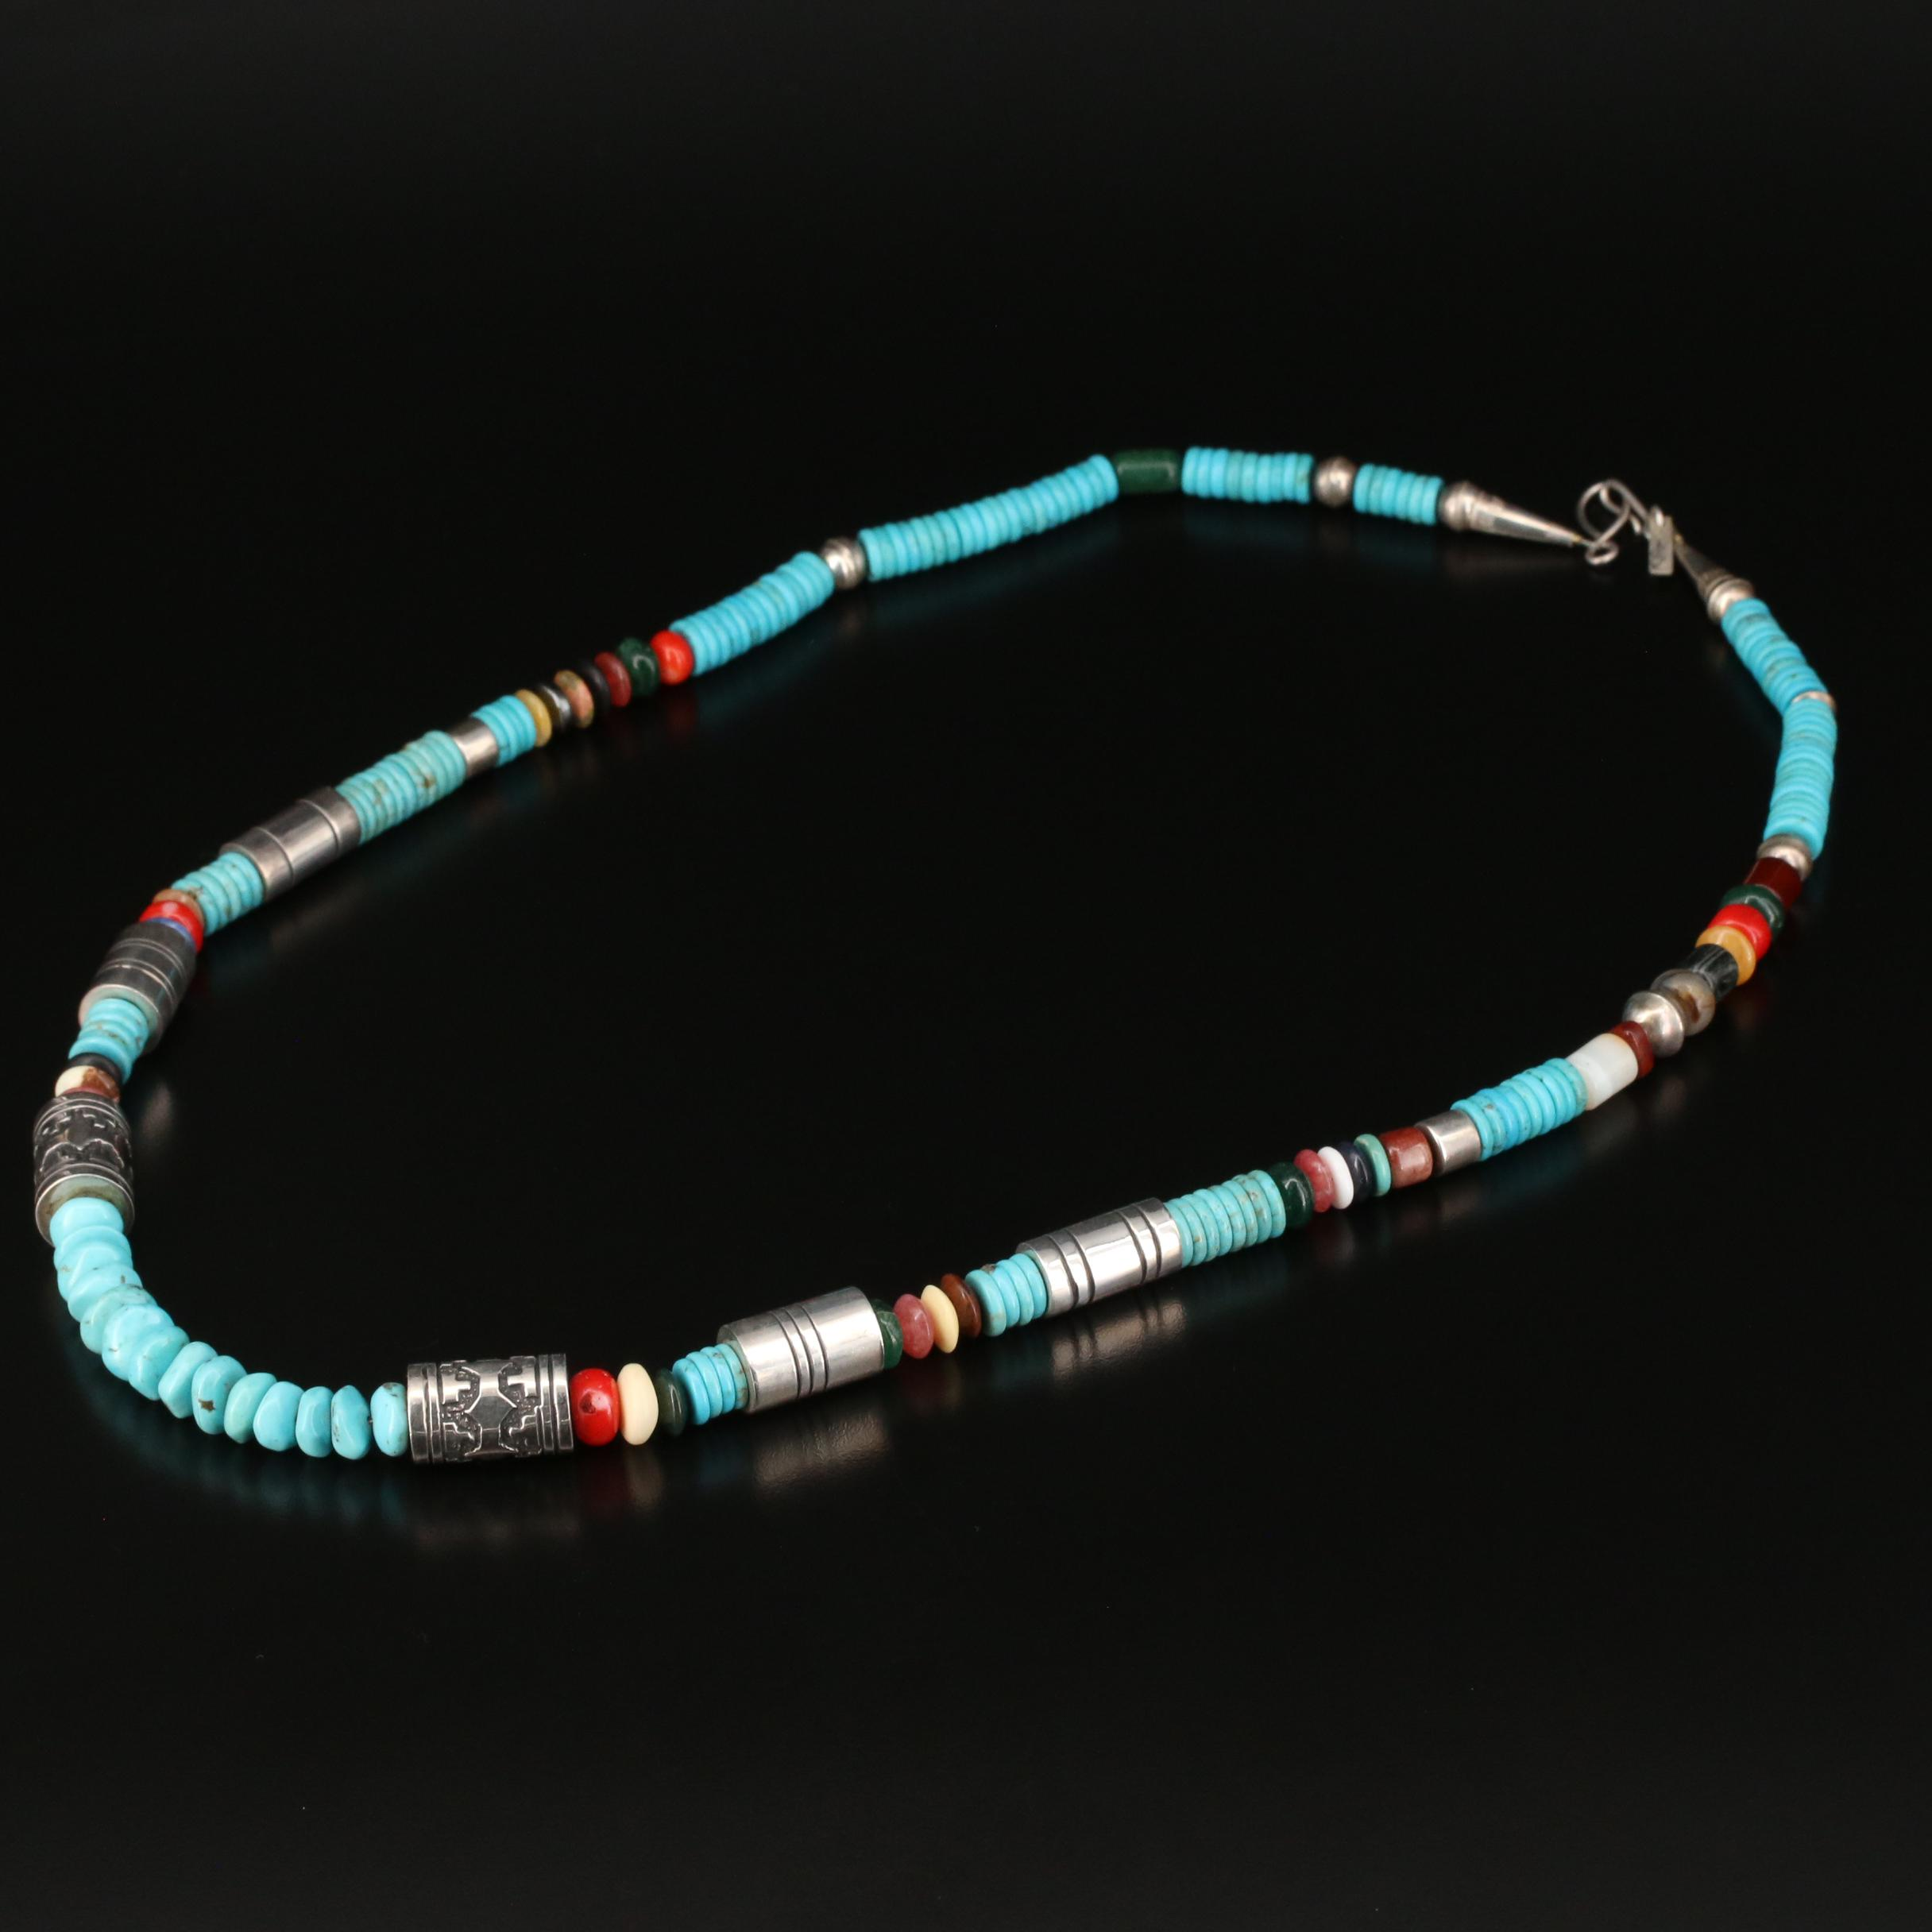 Black Onyx Heishe Turquoise and Coral Mother of pearl Multi Strand Necklace